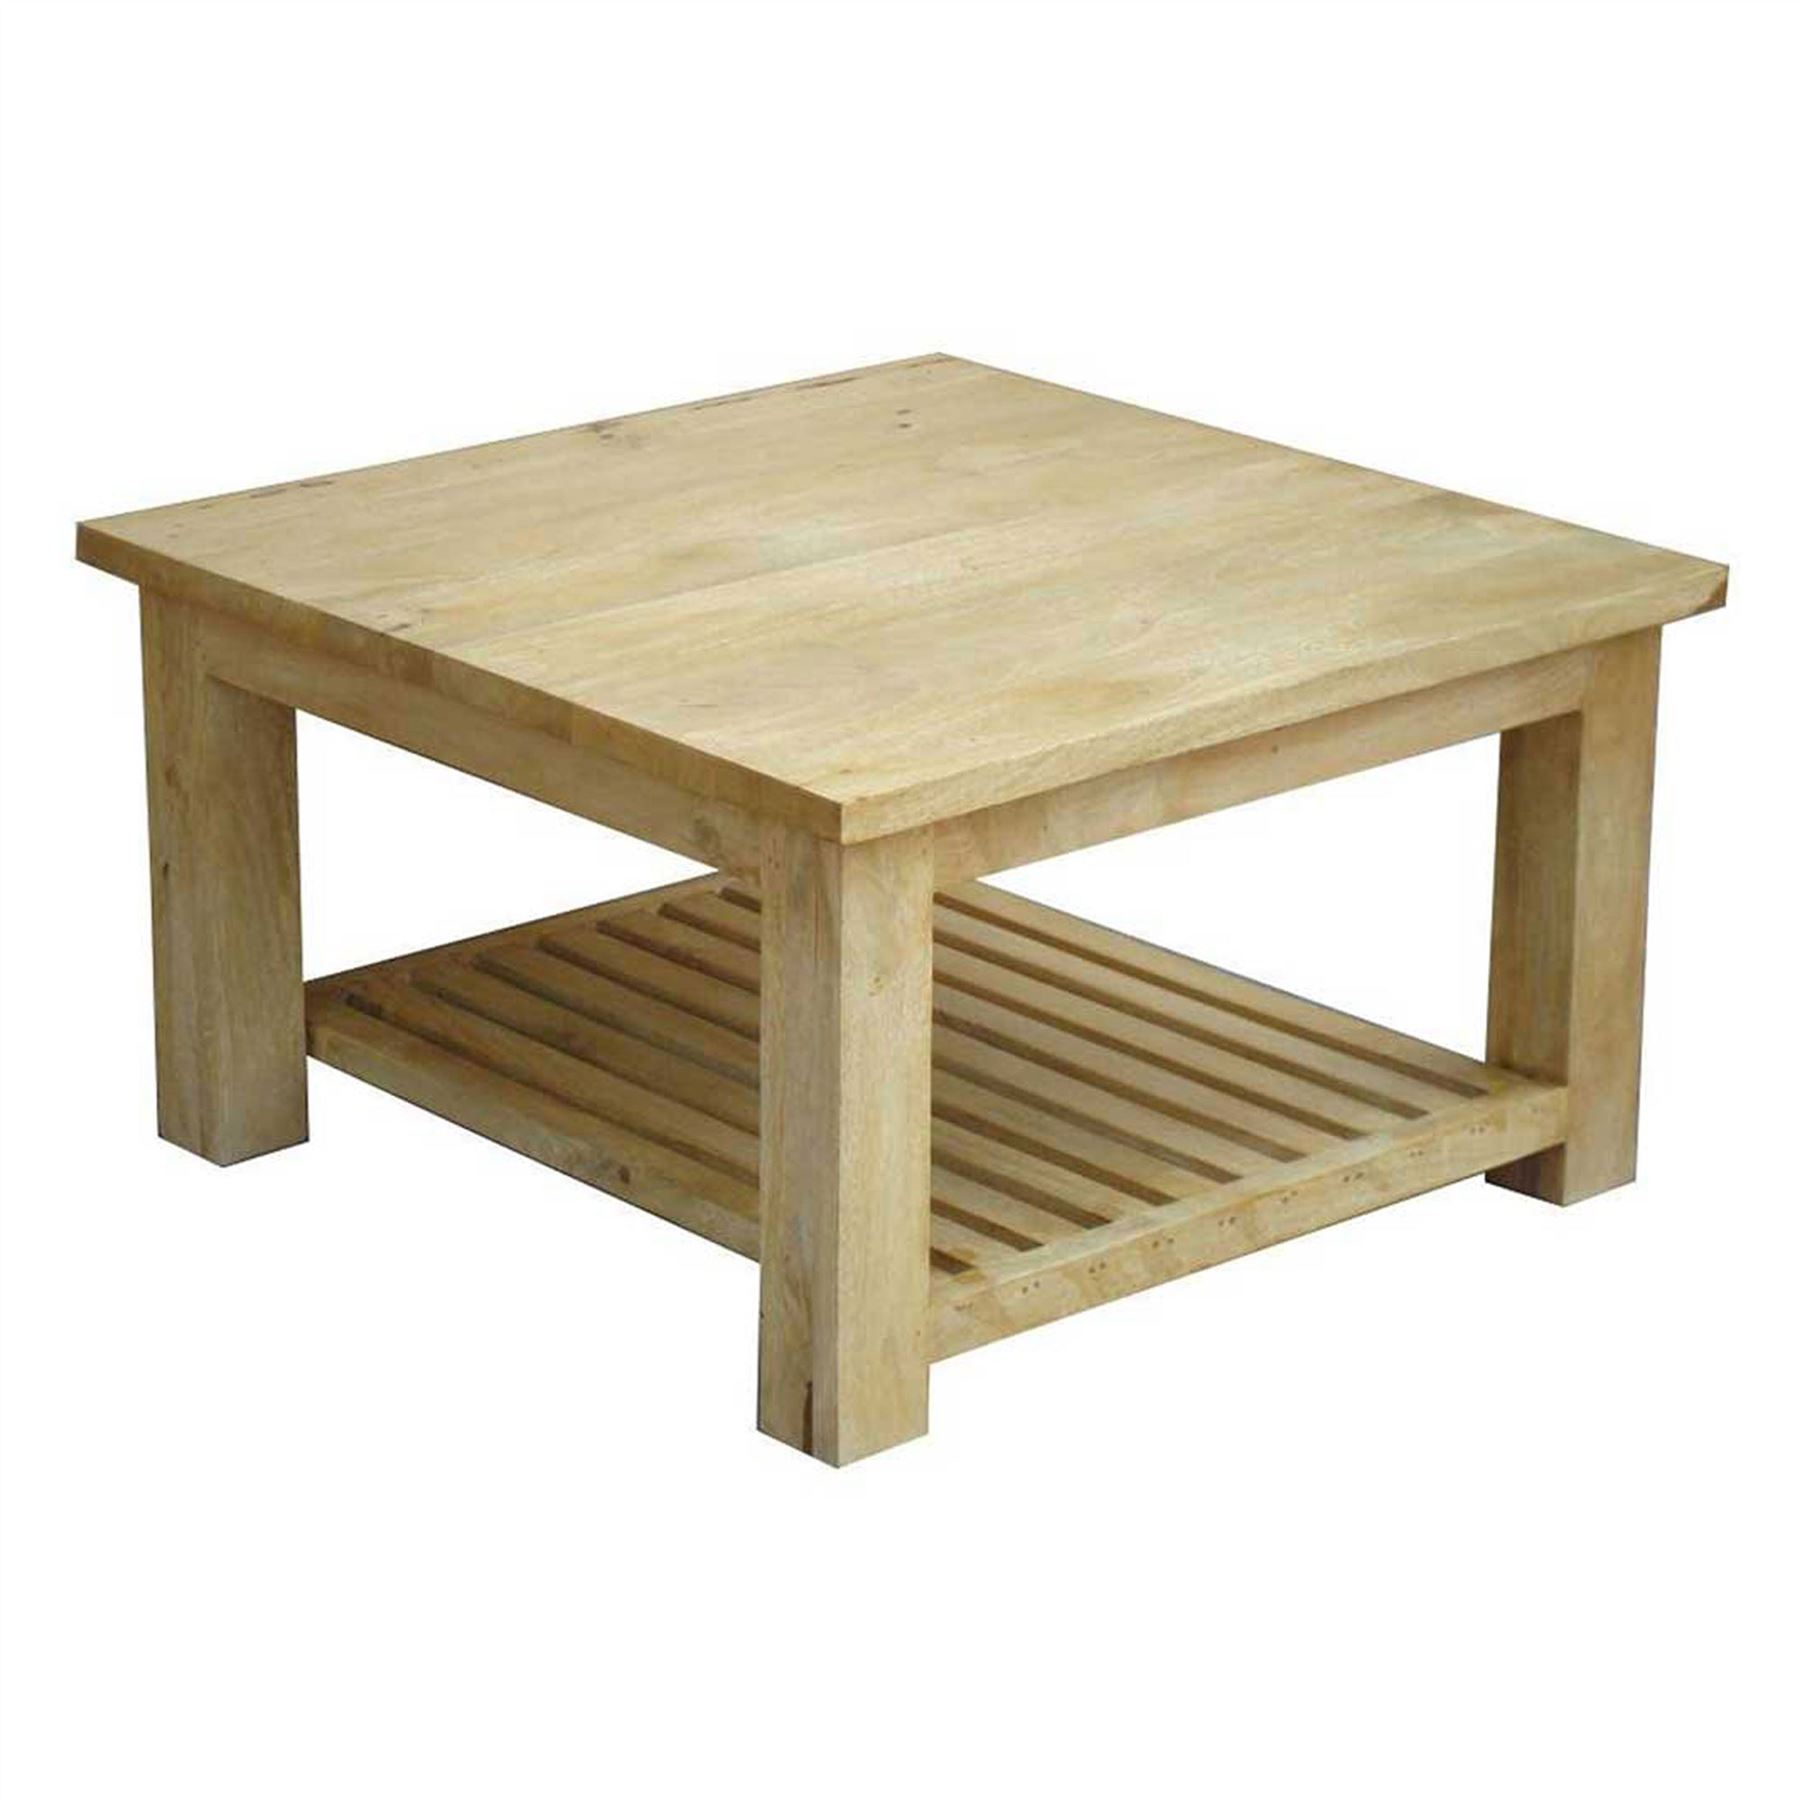 Solid Wood Coffee Table Online India: Mangat Solid Hard Wood Indian Furniture TV Unit Coffee